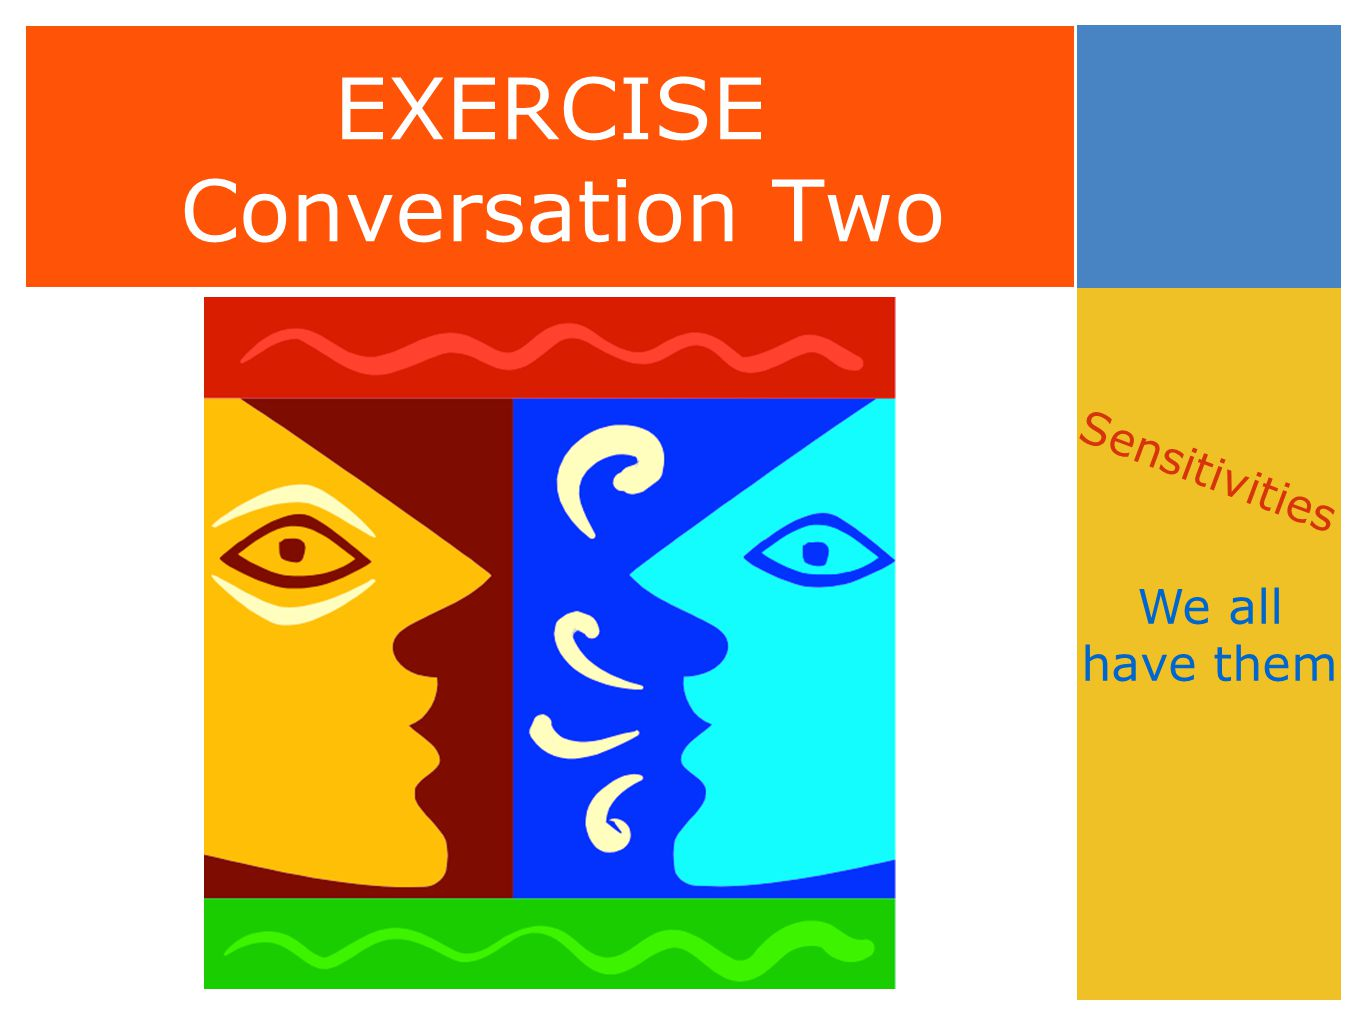 EXERCISE Conversation Two